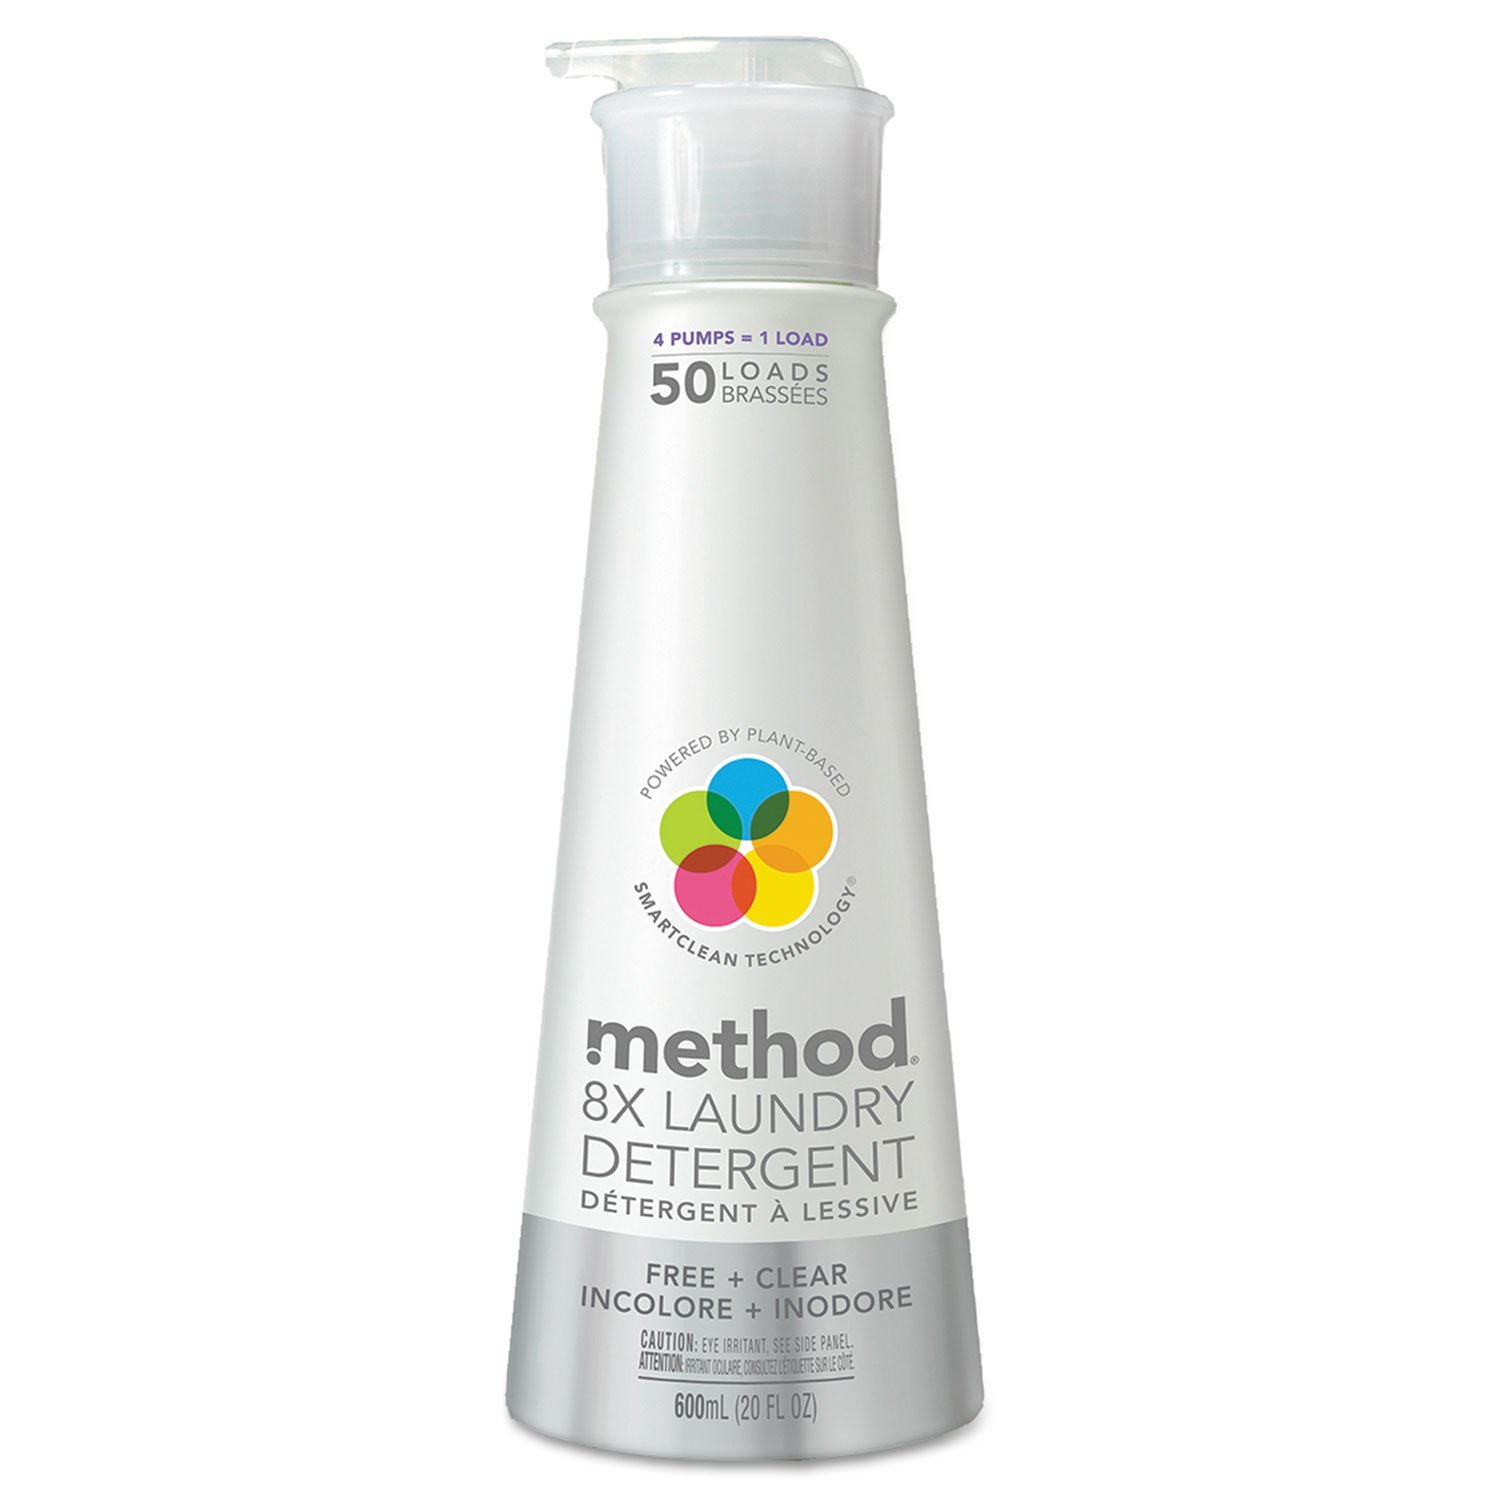 Method 01126 8X Laundry Detergent, Free & Clear, 20 oz Bottle